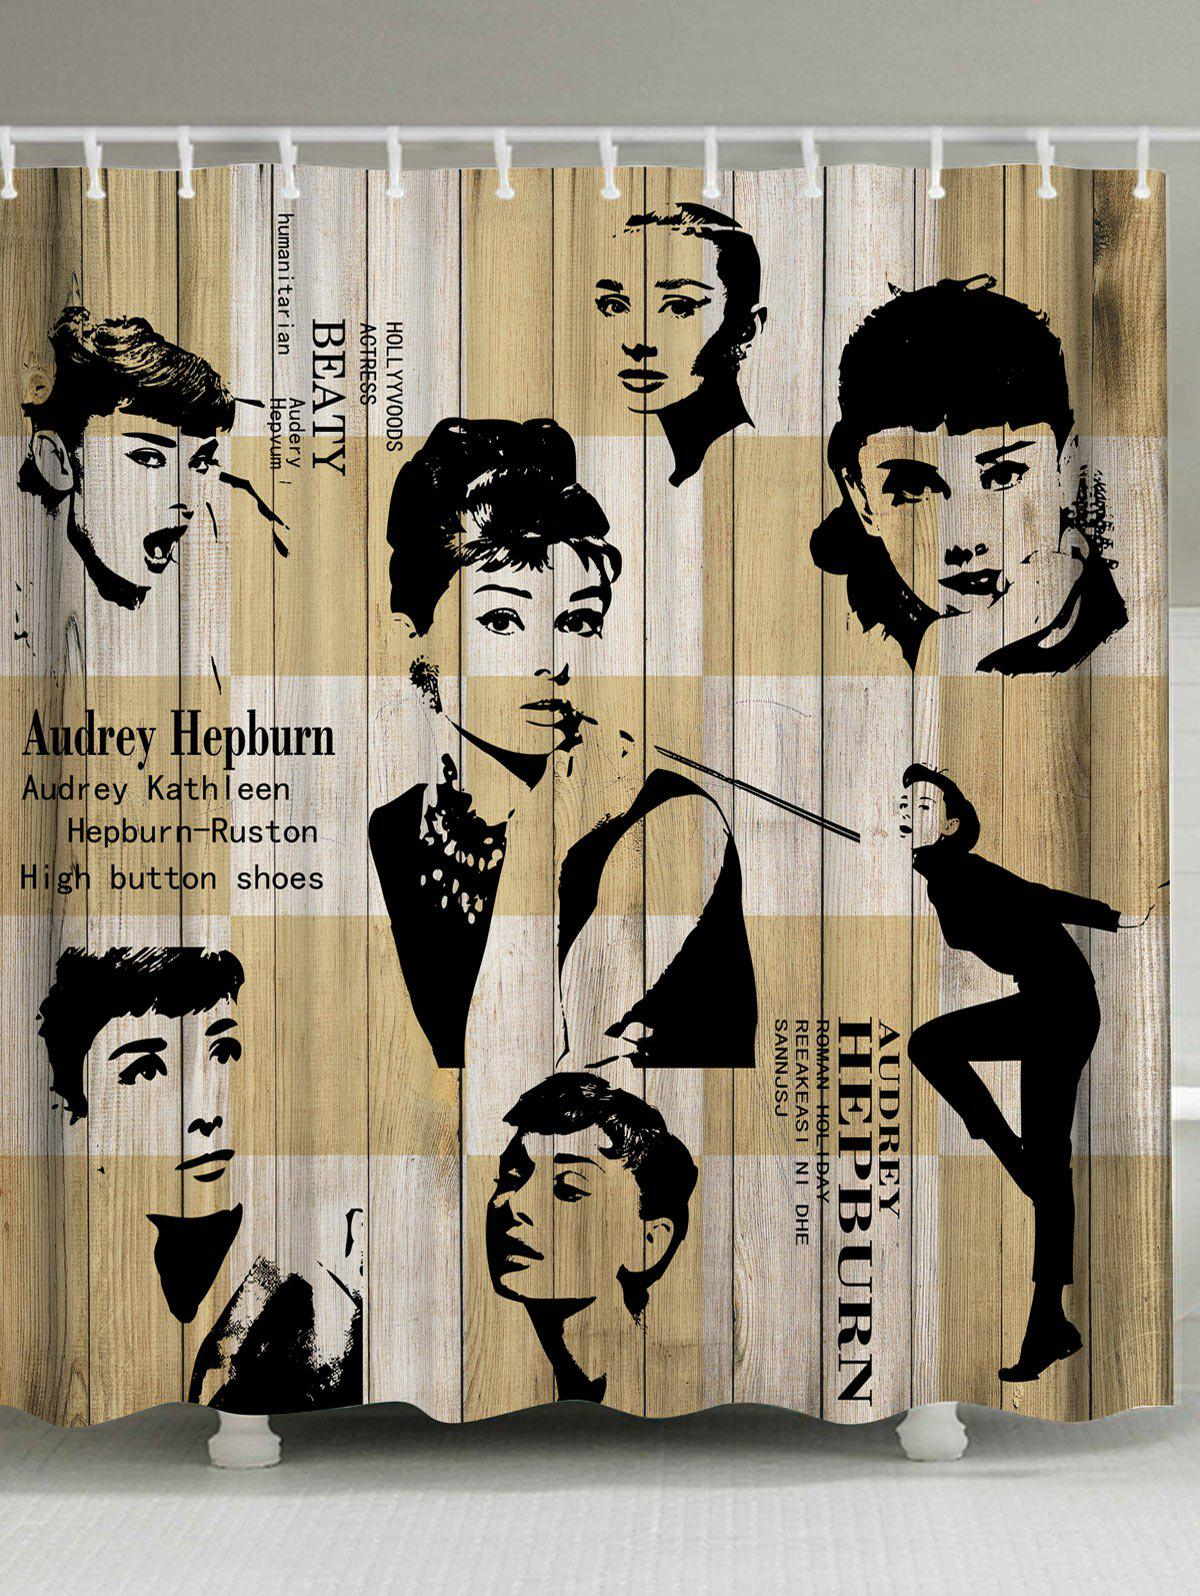 Waterproof Fabric Audrey Hepburn Shower Curtain front hub city road lion disc brakes front wheel tire rims